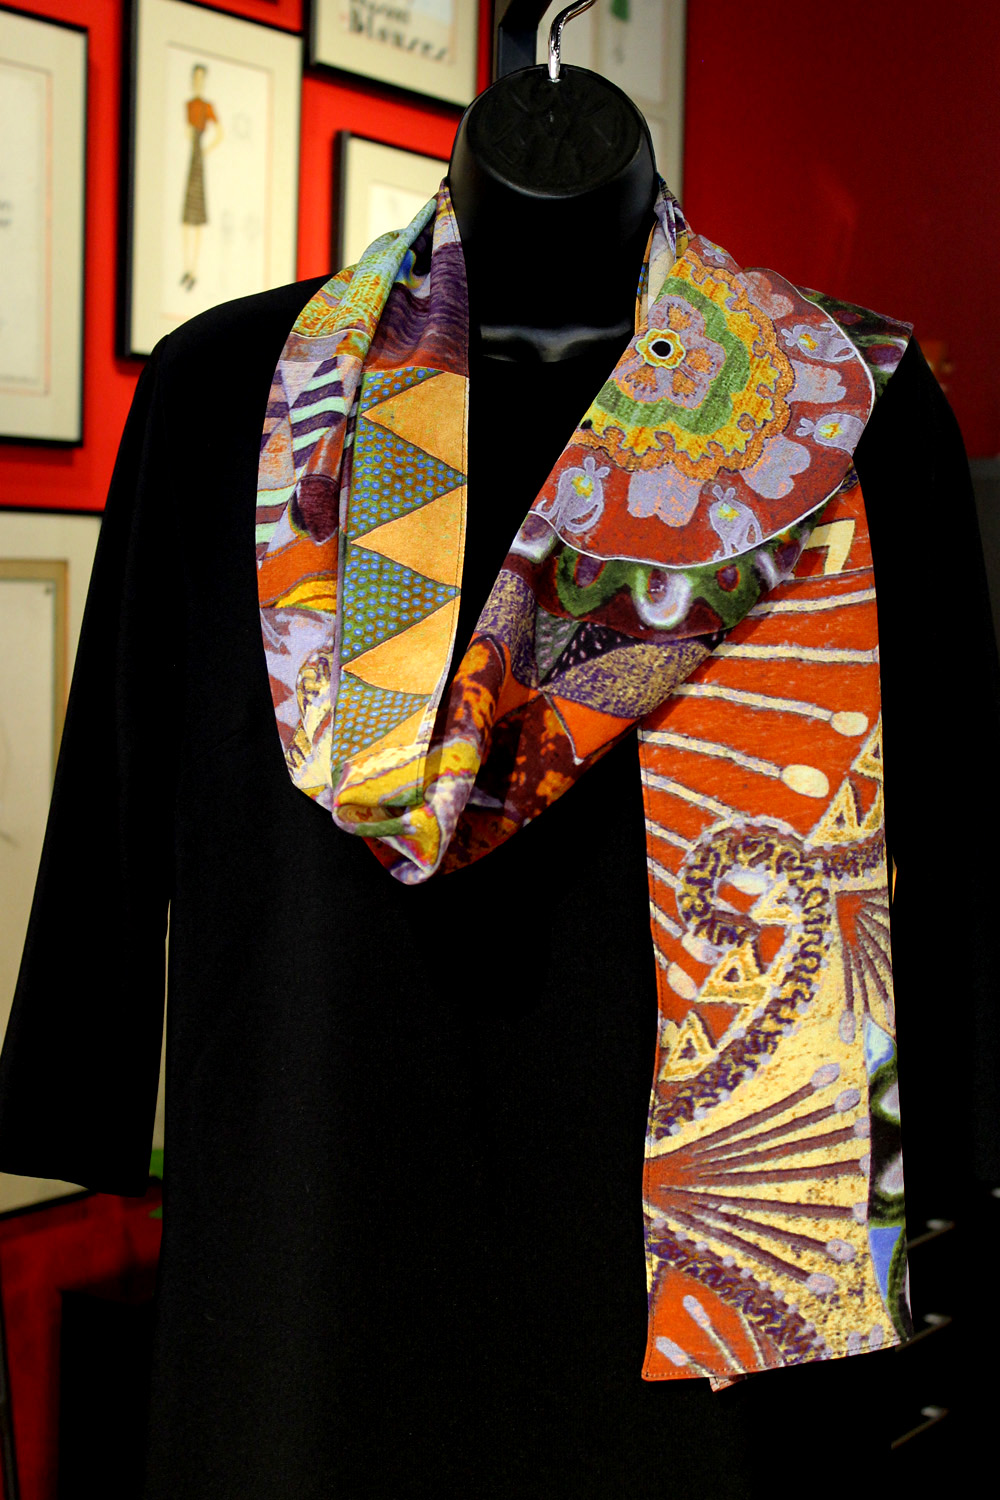 night-circus-earthy-colorful-scarf-from-original-collage-art-by-designer-judi-magier-img_3960-1500px.jpg